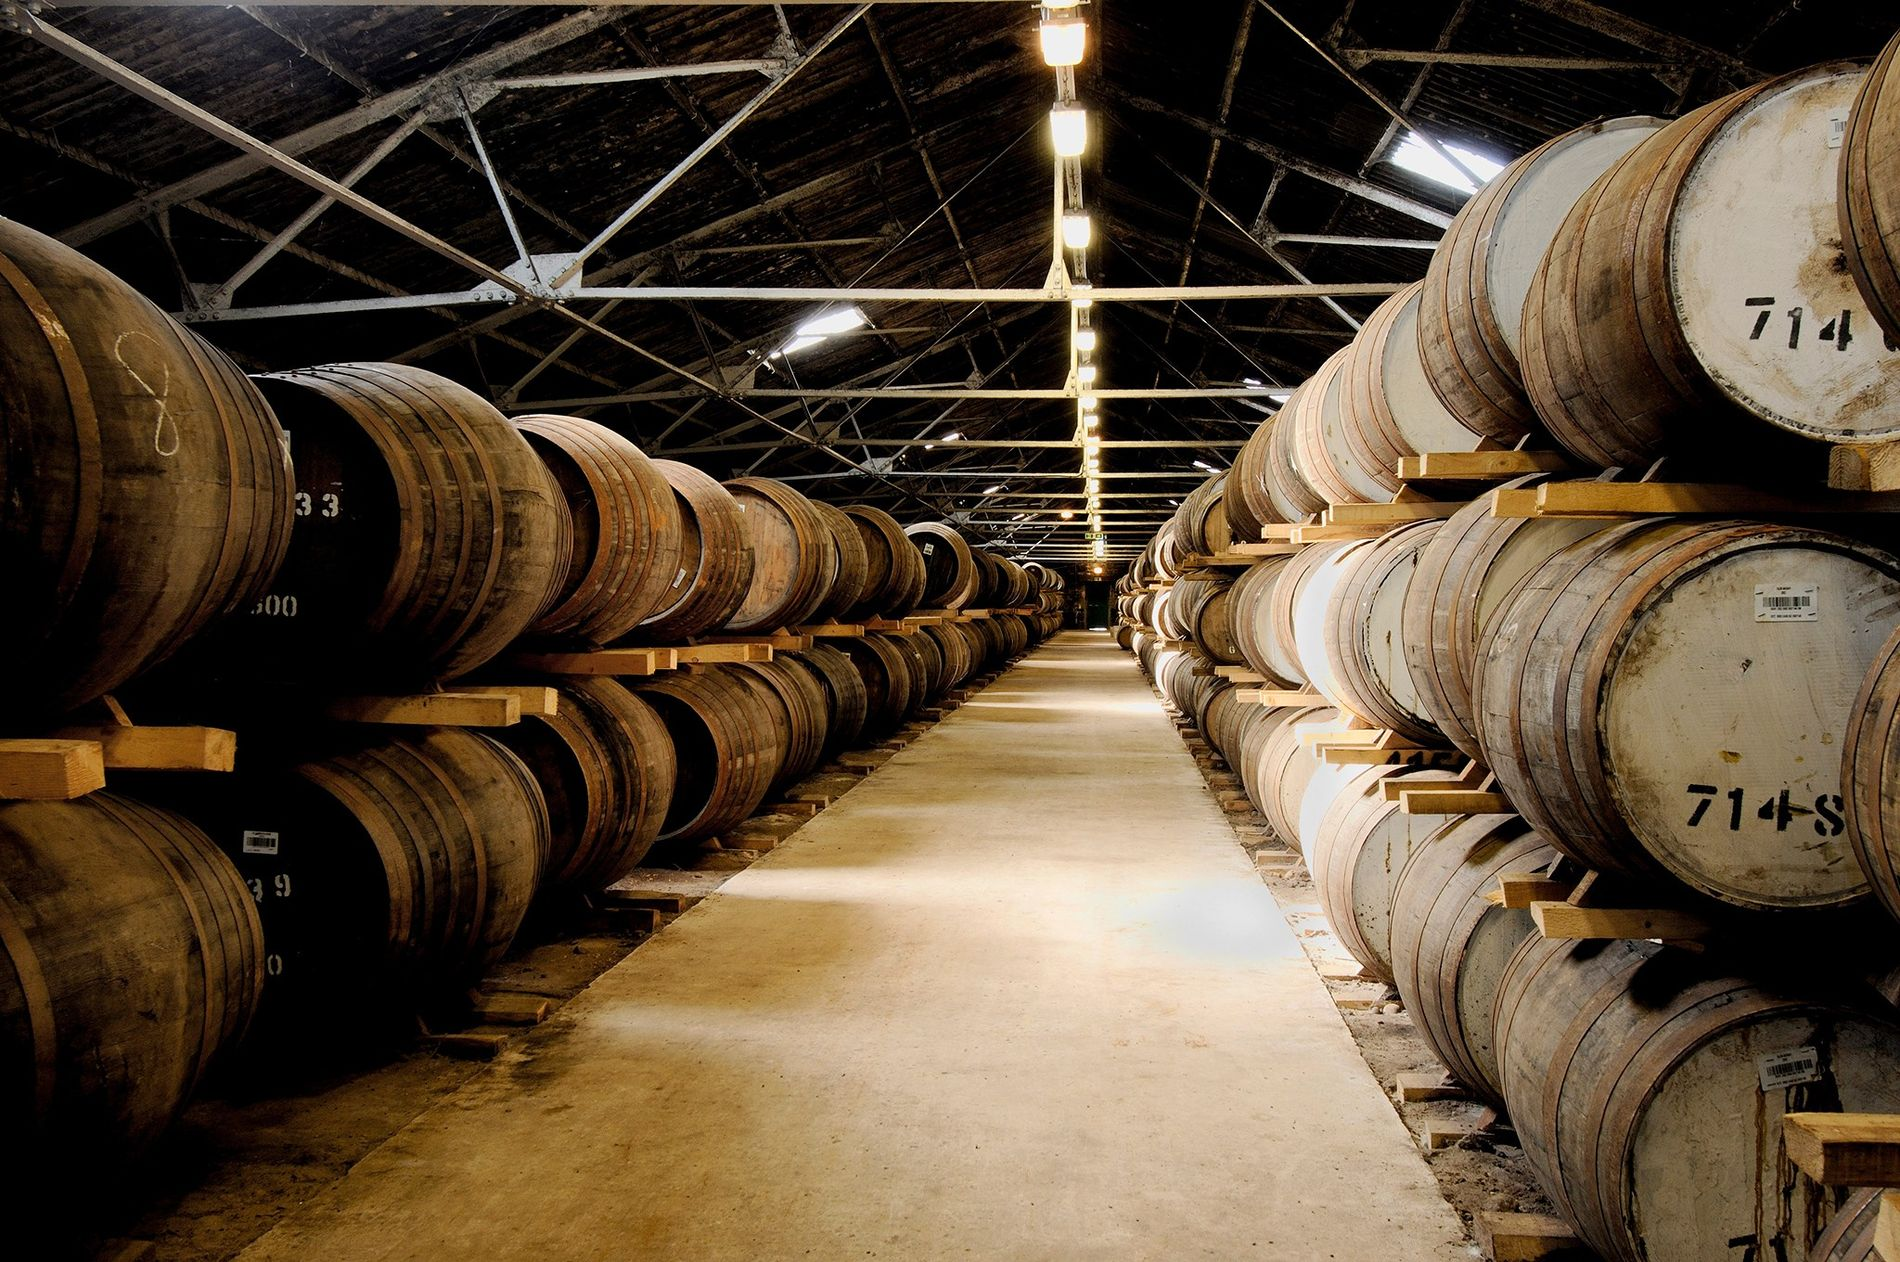 Glen Moray started production in Speyside in 1897, but many of the country's historic distilleries closed.